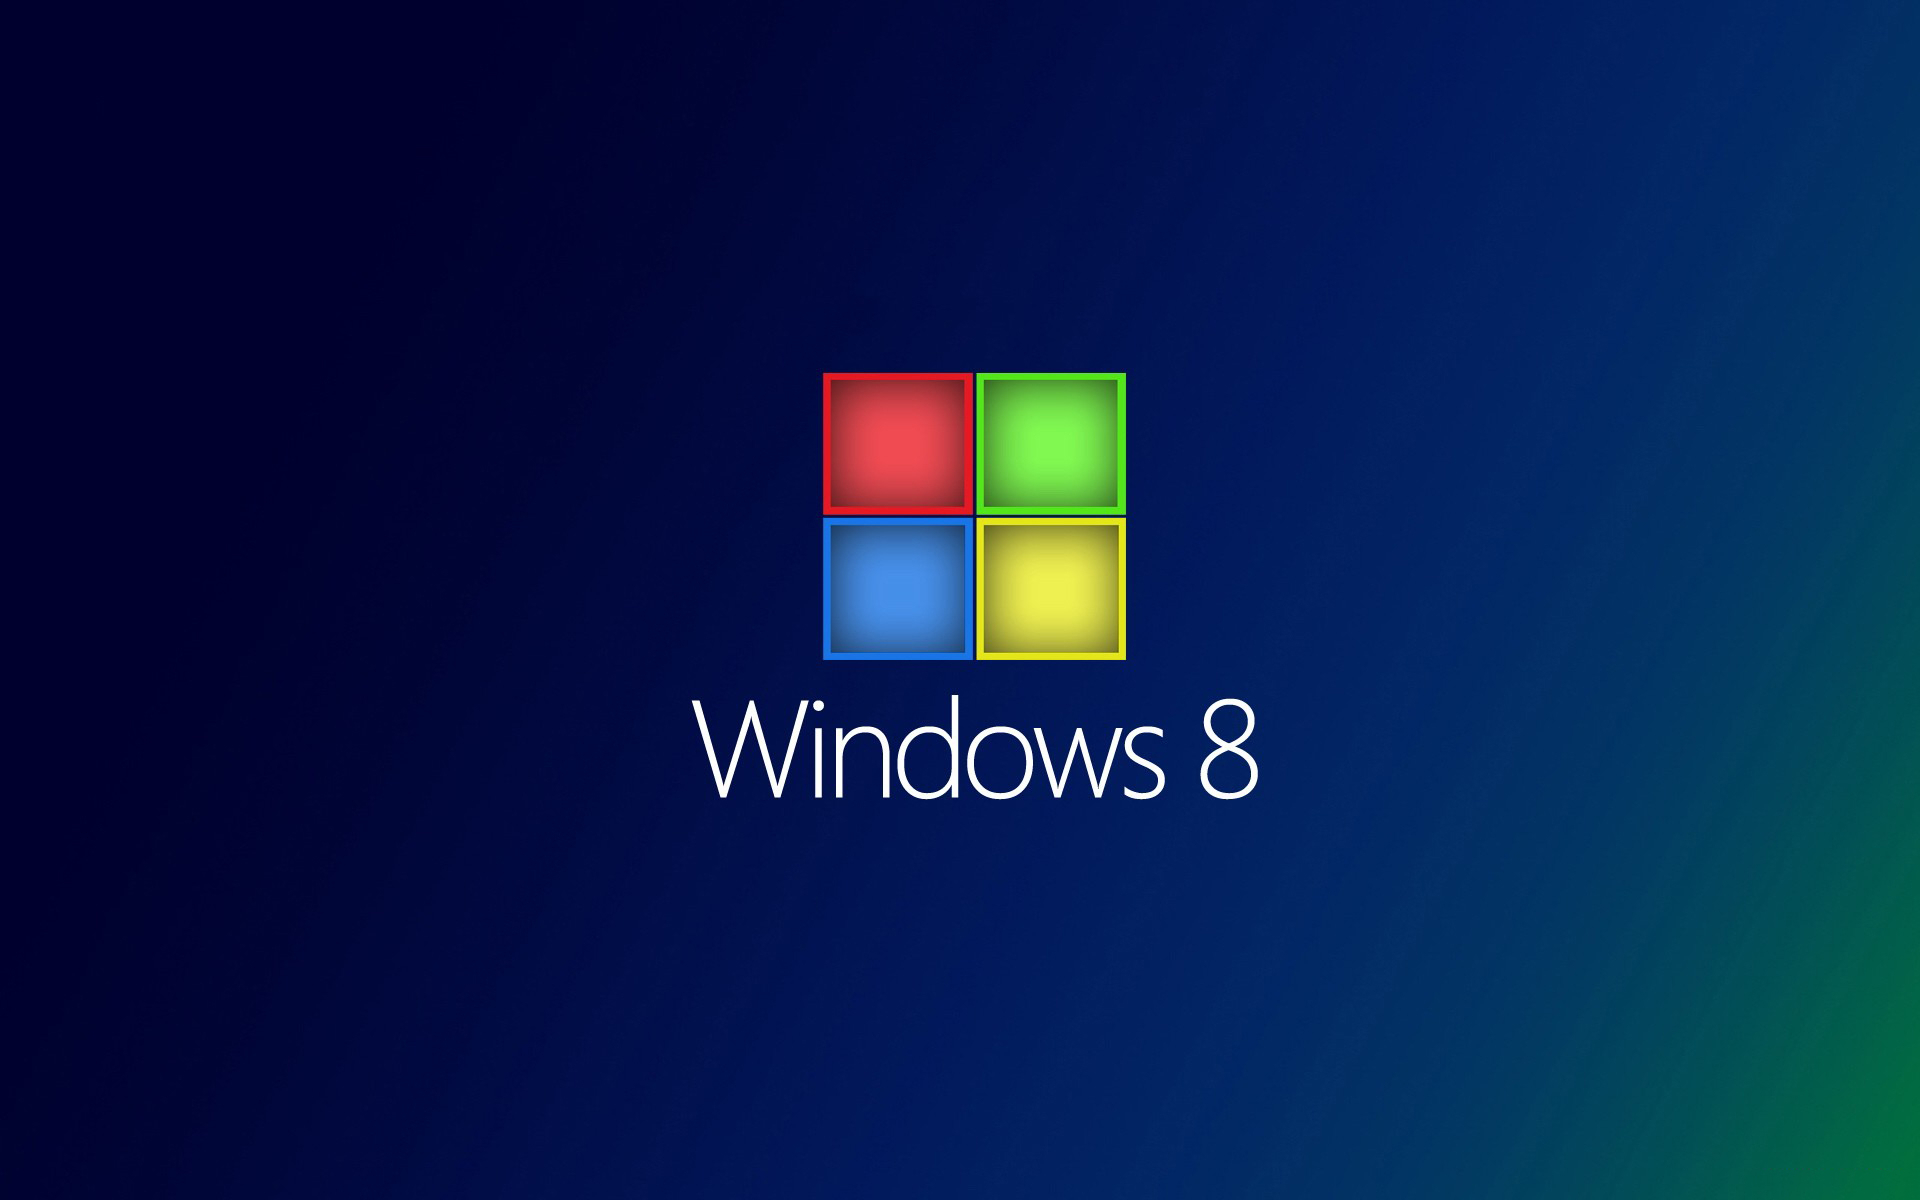 Cool Windows 8 Wallpapers